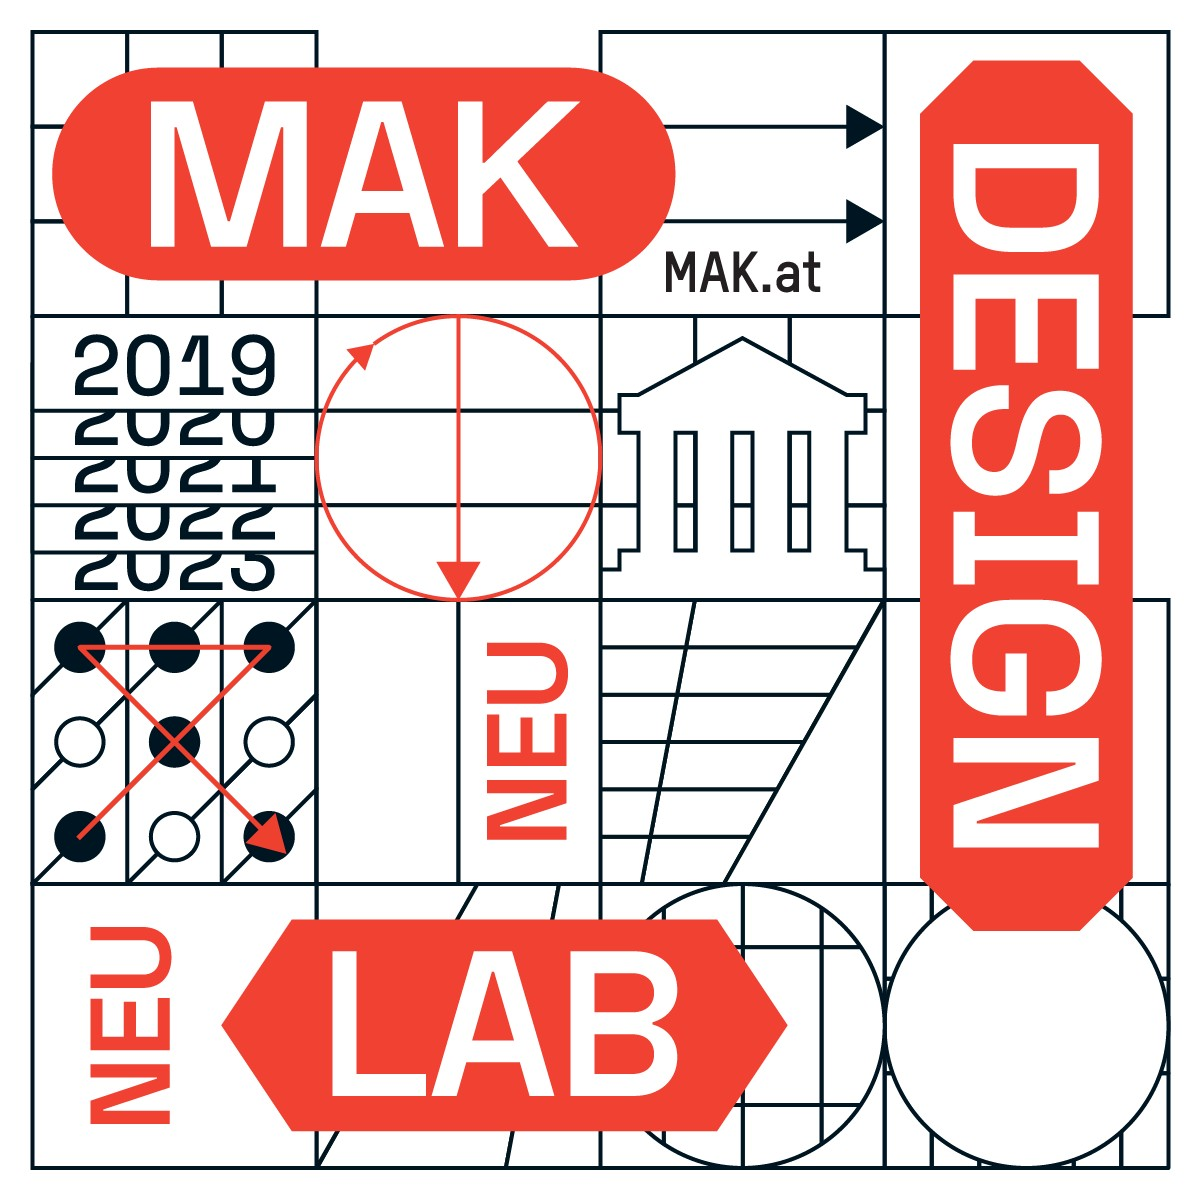 <BODY>MAK DESIGN LAB, Kommunikations- und Interaktionsdesign: LWZ, Wien</BODY>